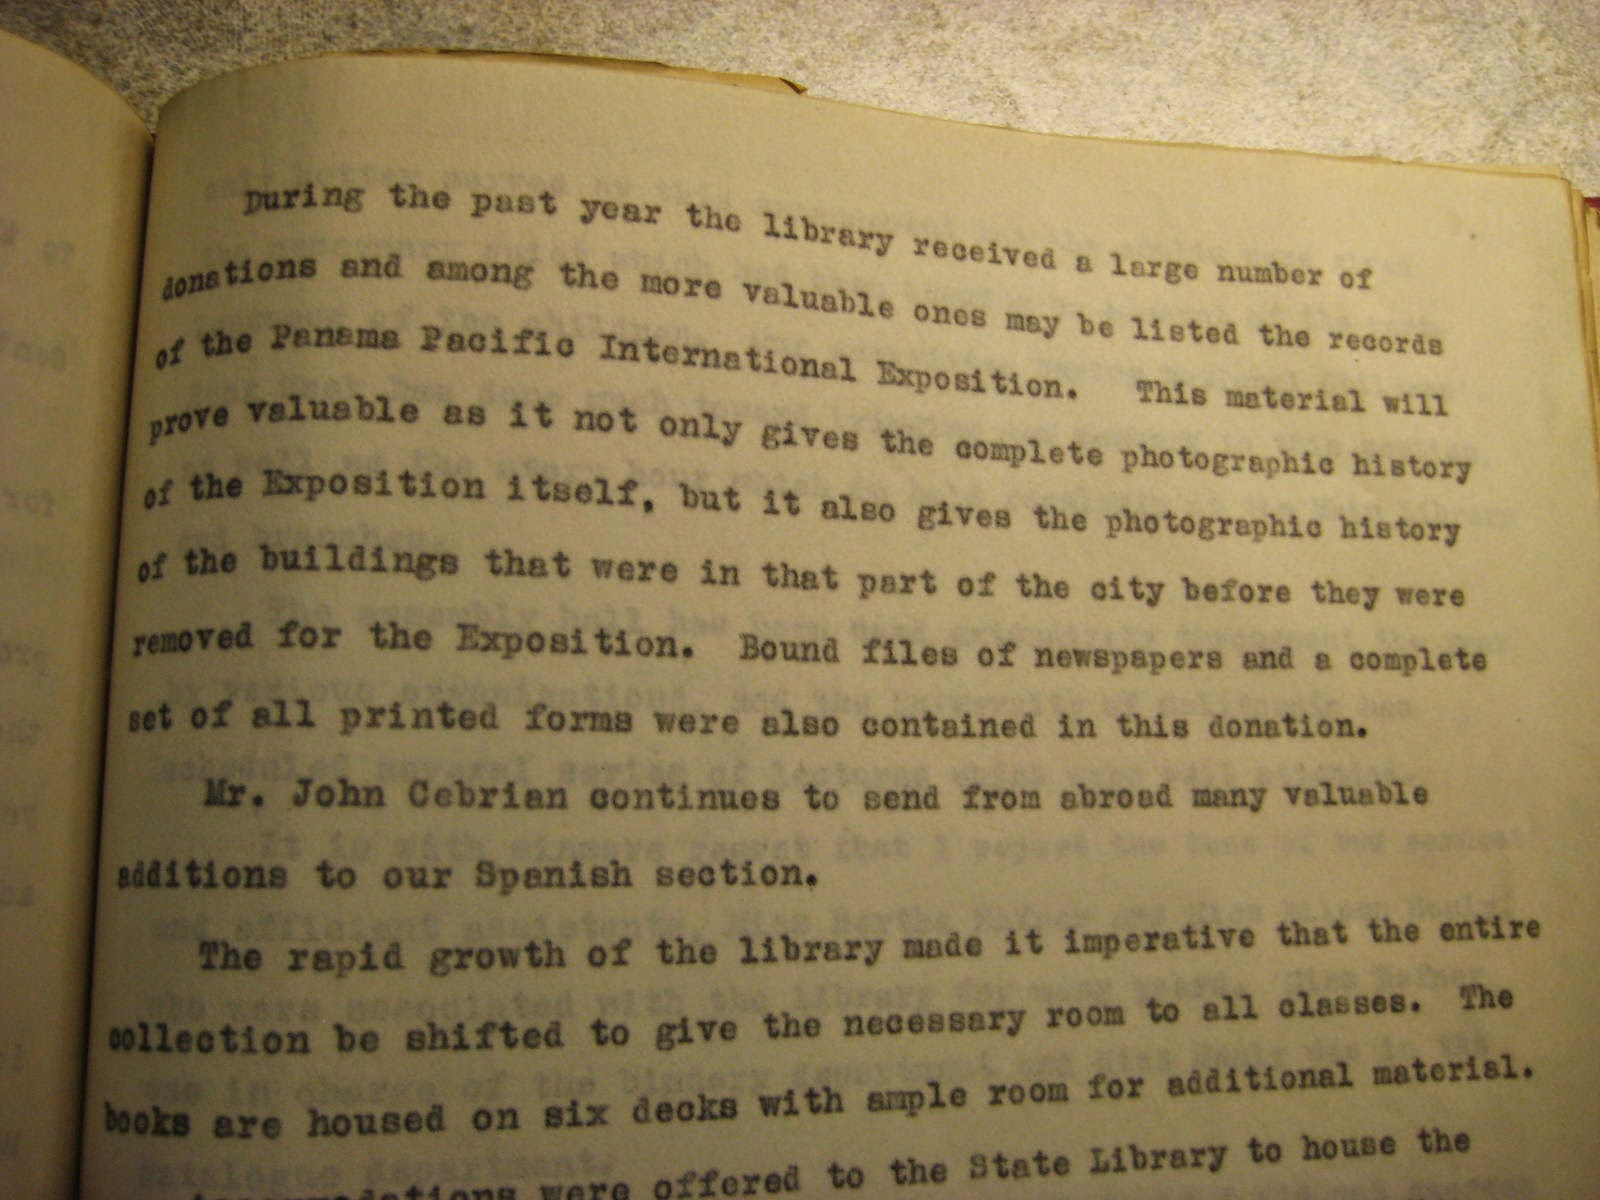 San Francisco Public Library Annual Report for 1924, San Francisco Public Library